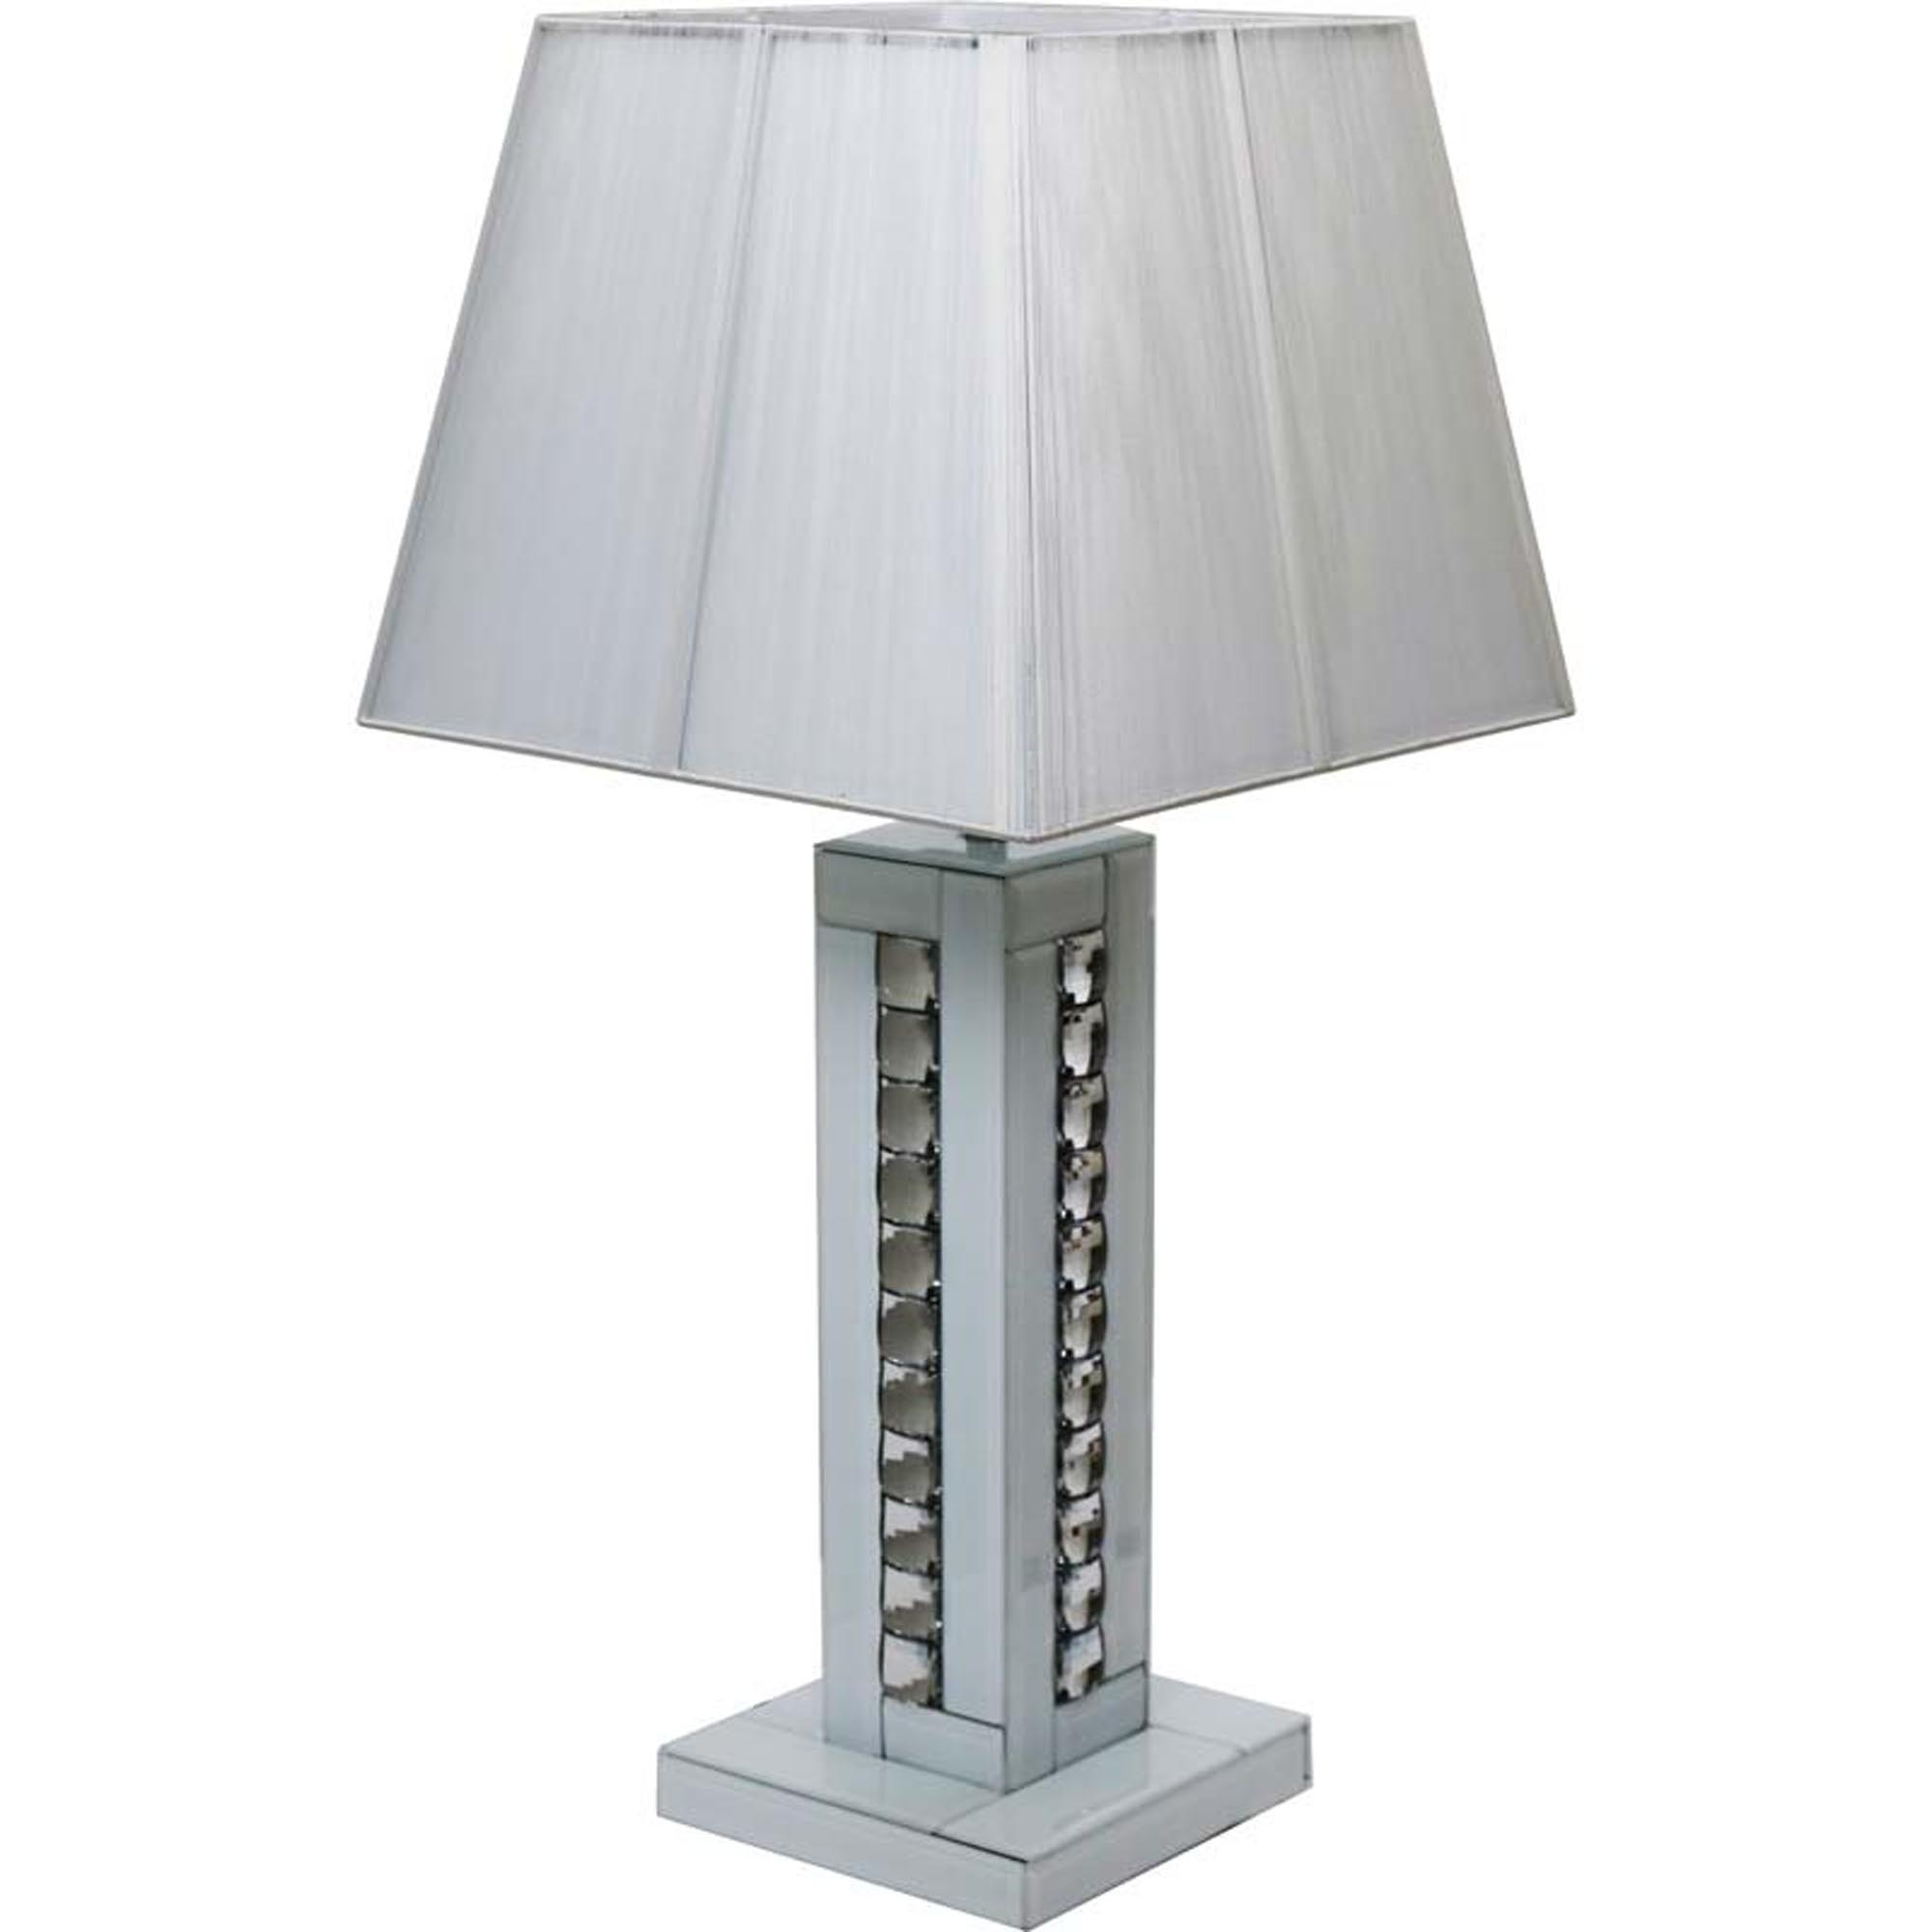 Crystal Table Lamp In White Lighting Table Lamps